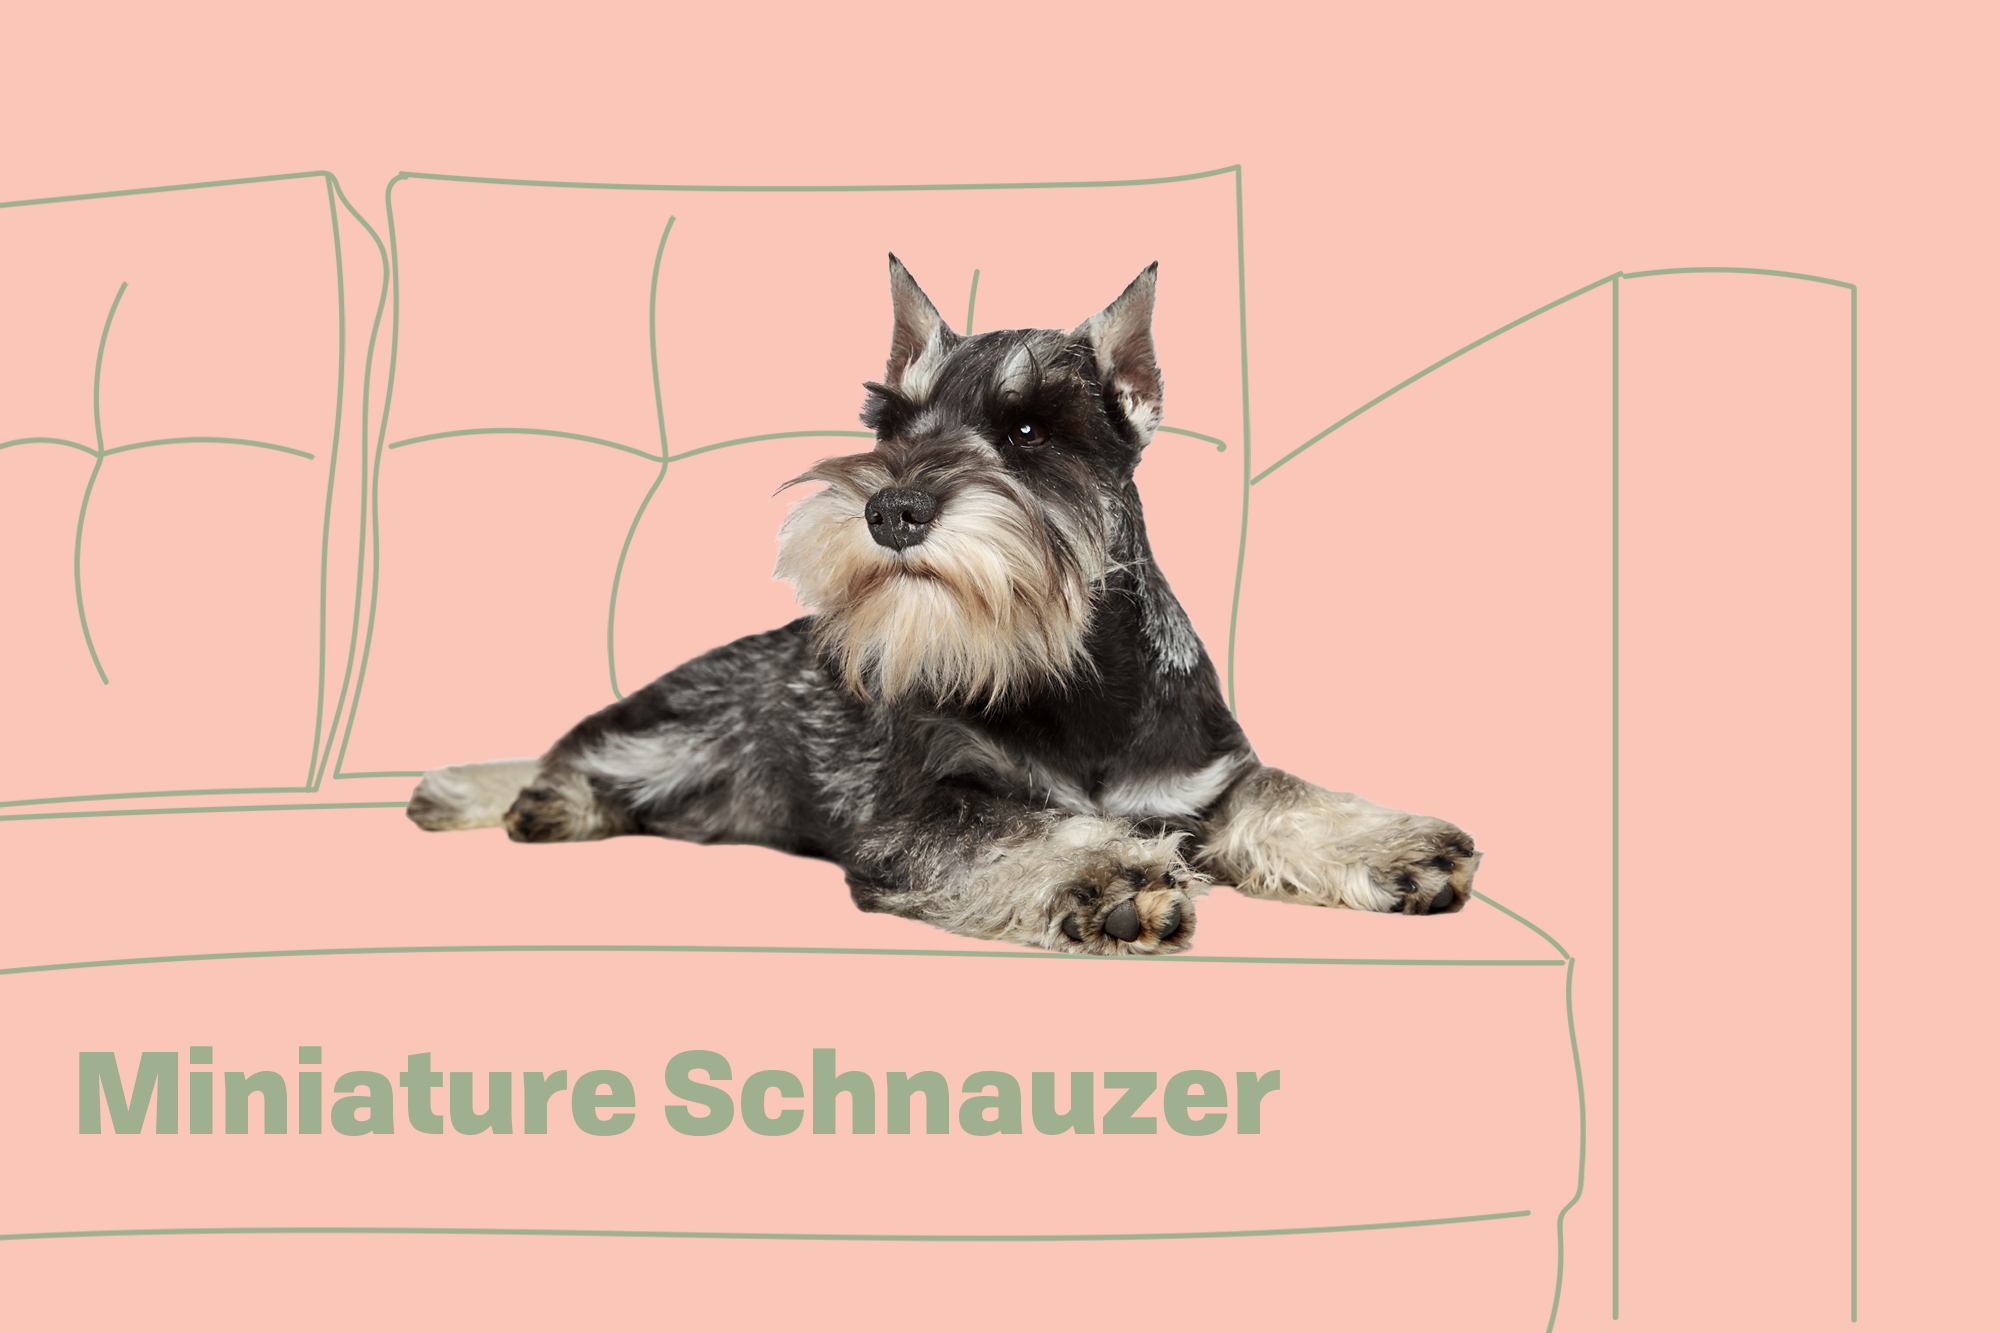 Miniature Schnauzer Breed photo